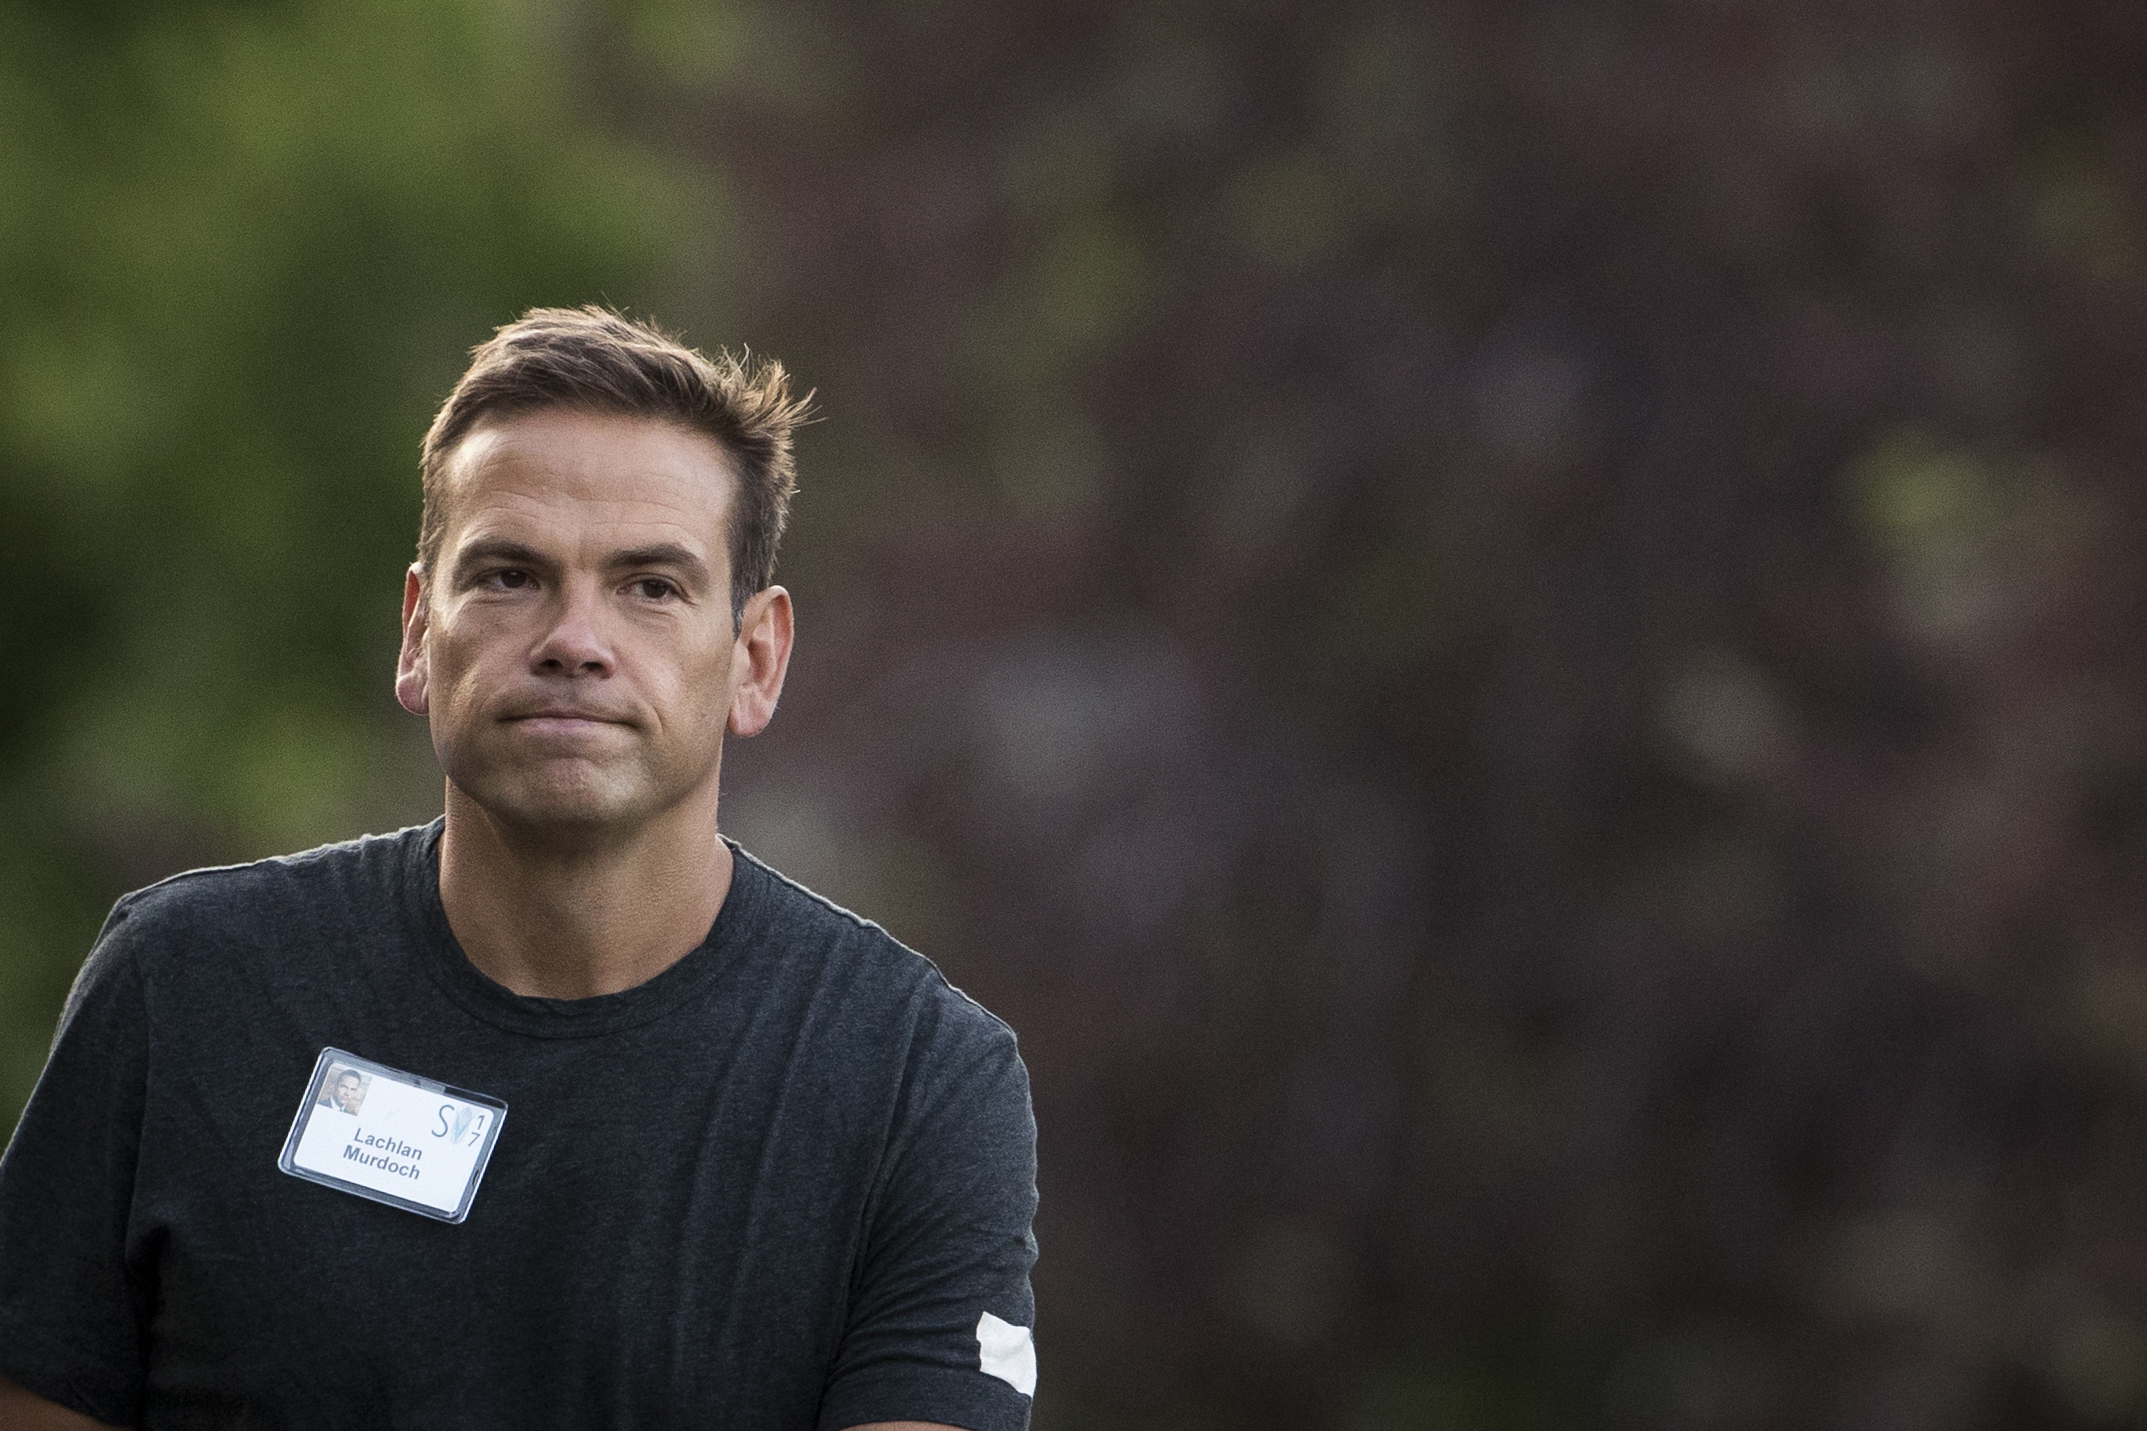 Lachlan Murdoch, CEO of Fox Corp., arrives on the third day of the annual Allen & Company Sun Valley Conference, July 13, 2017 in Sun Valley, Idaho. (Drew Angerer/Getty Images)